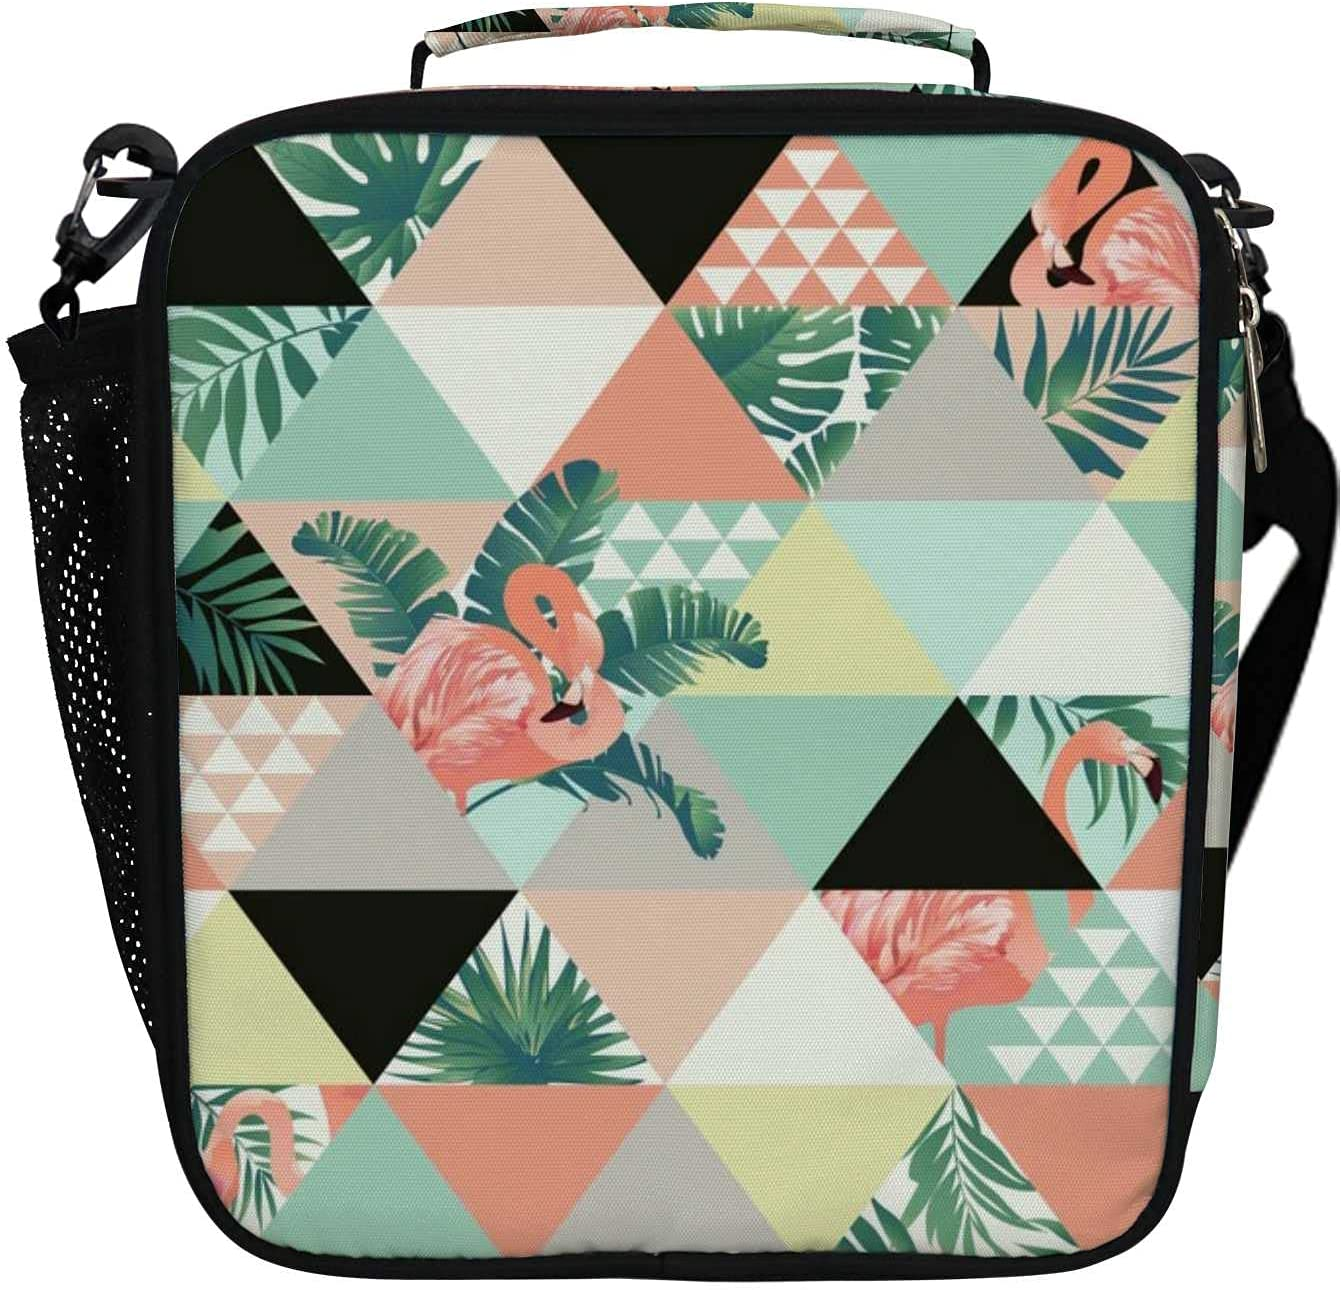 Lunch Bag Tote Handbag Ranking TOP5 Lunchbox Fo Red Hibiscus Ranking TOP5 Tropical Flowers